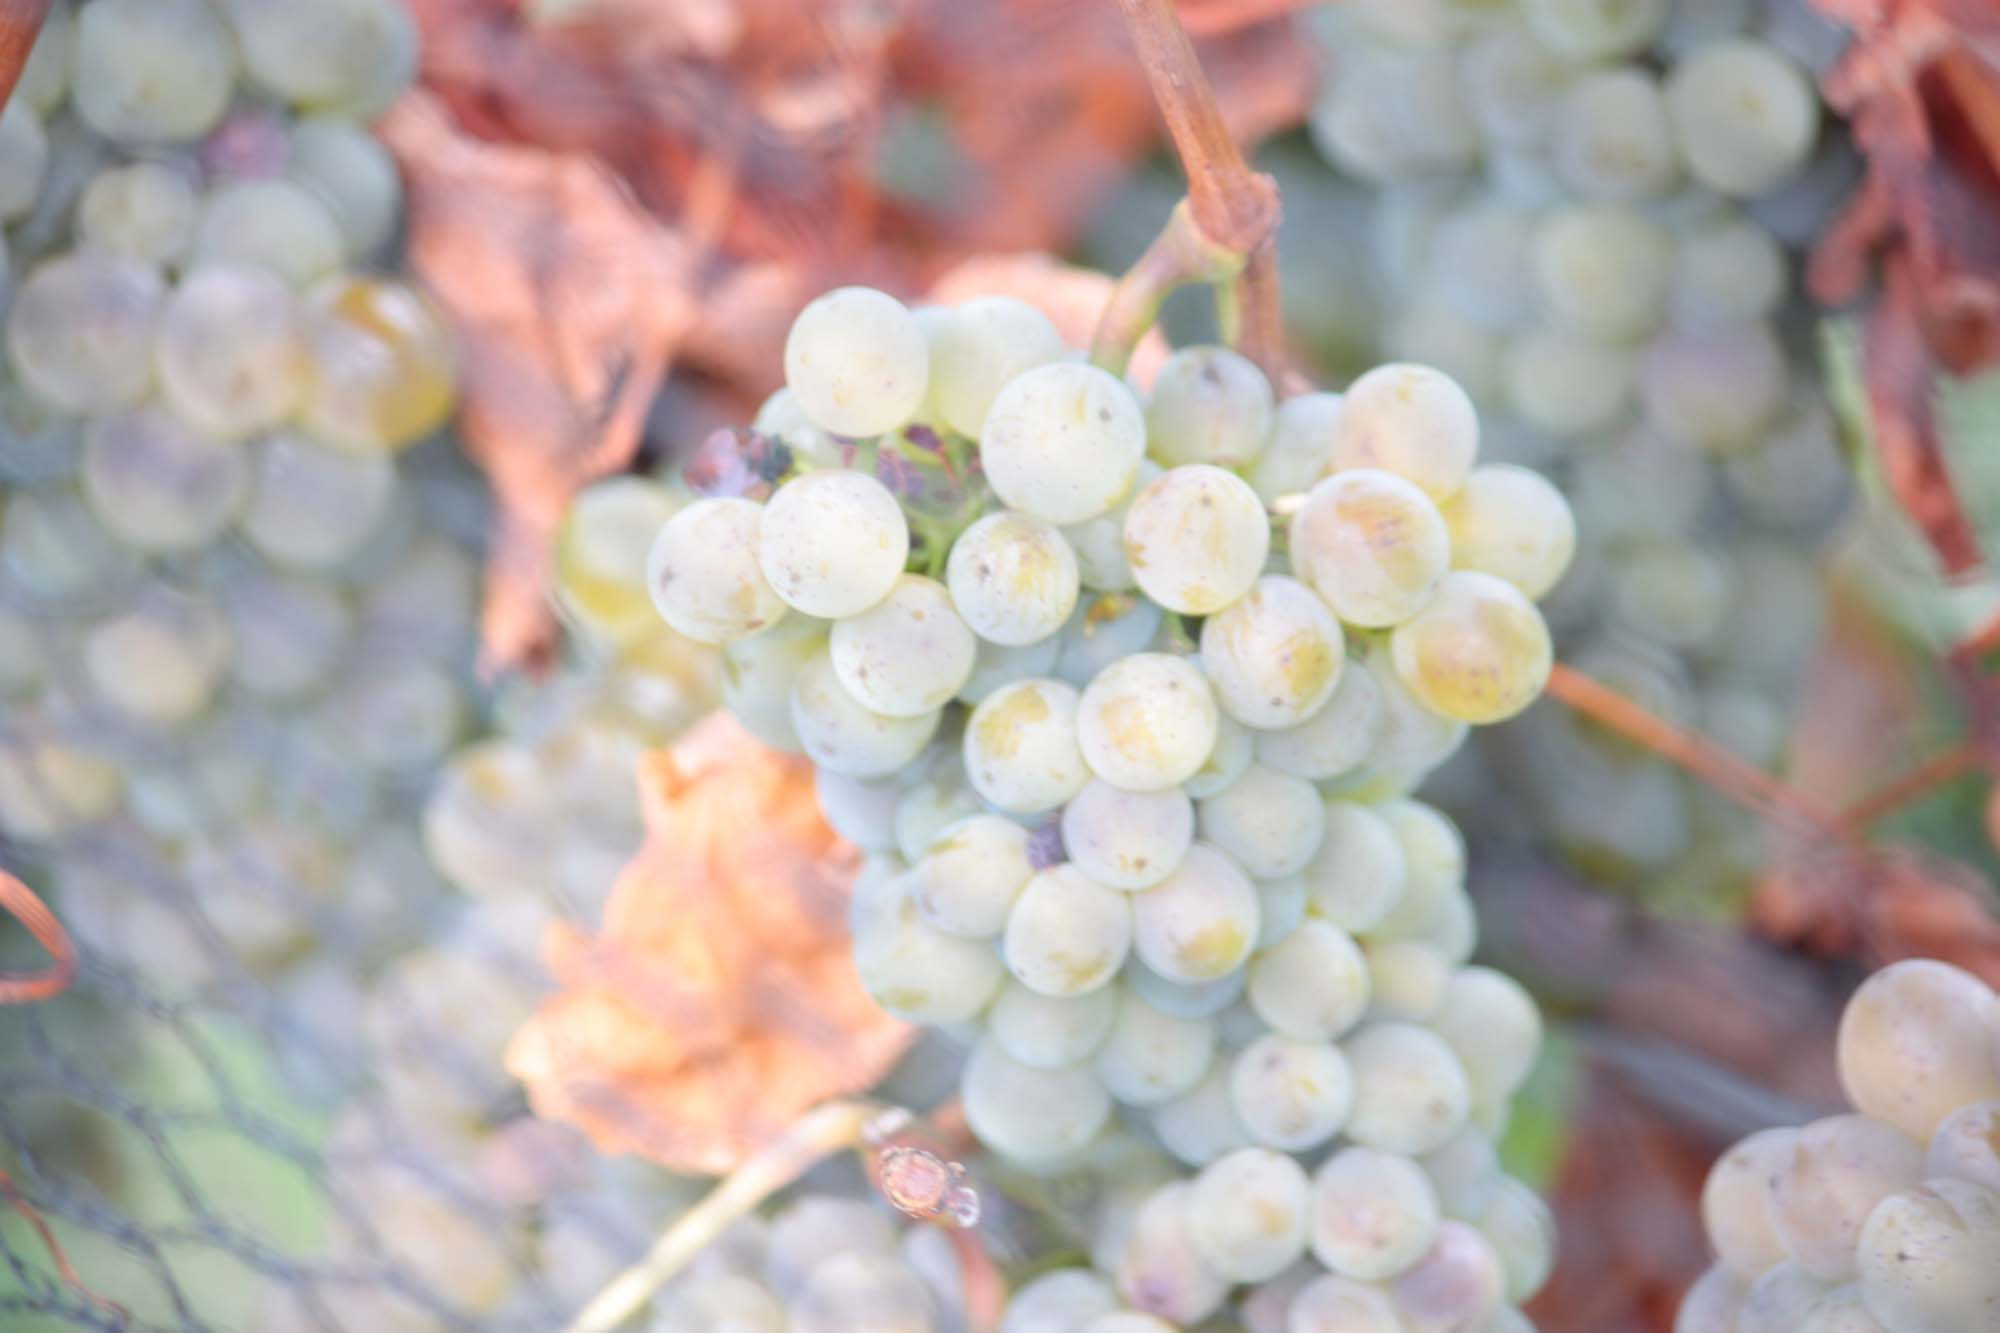 Sauvignon Blanc Grapes ready for picking and making into wine, Martinborough, 26 Rows